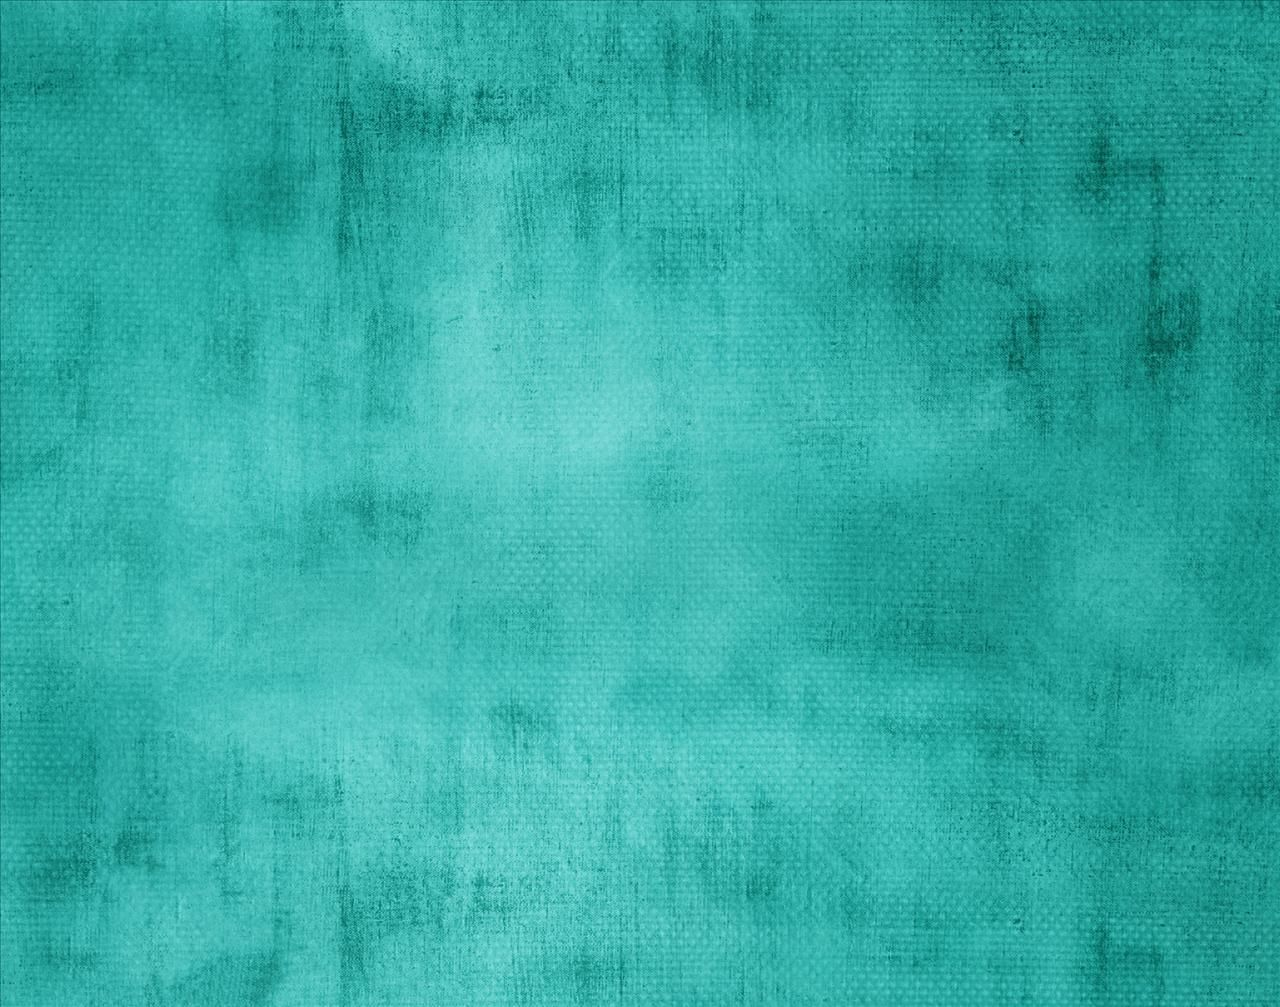 Turquoise! Picaboo Free Backgrounds Turquoise background